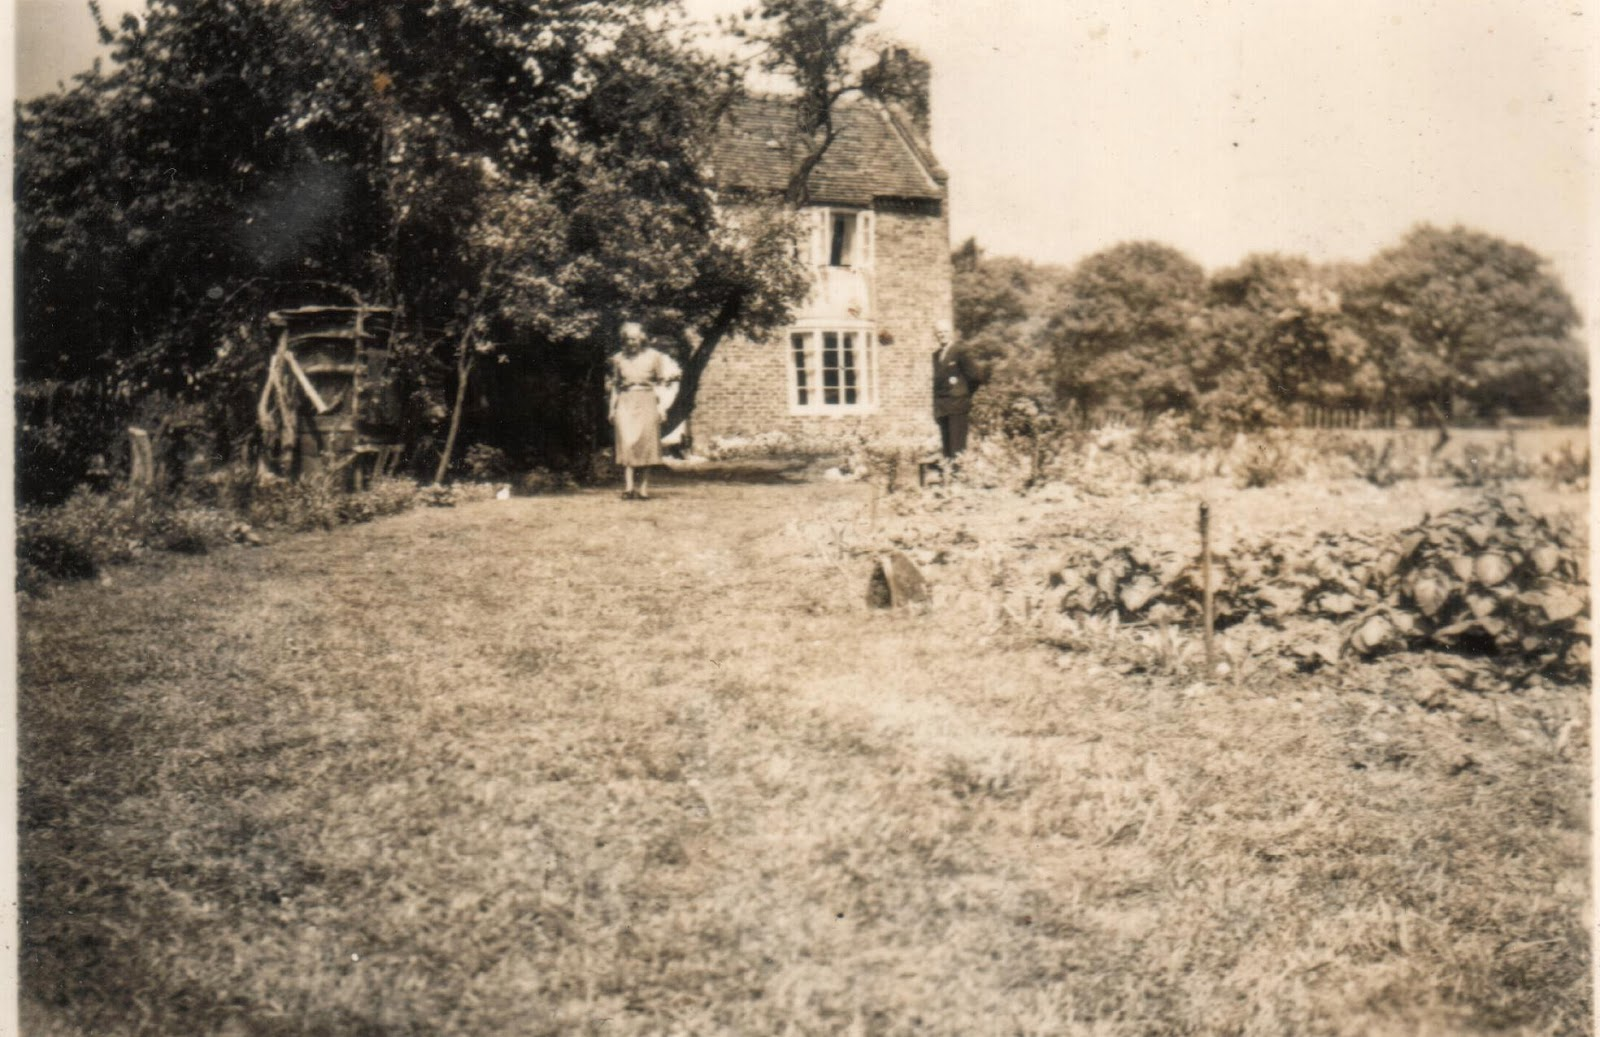 Country garden in the making 1940s Britain